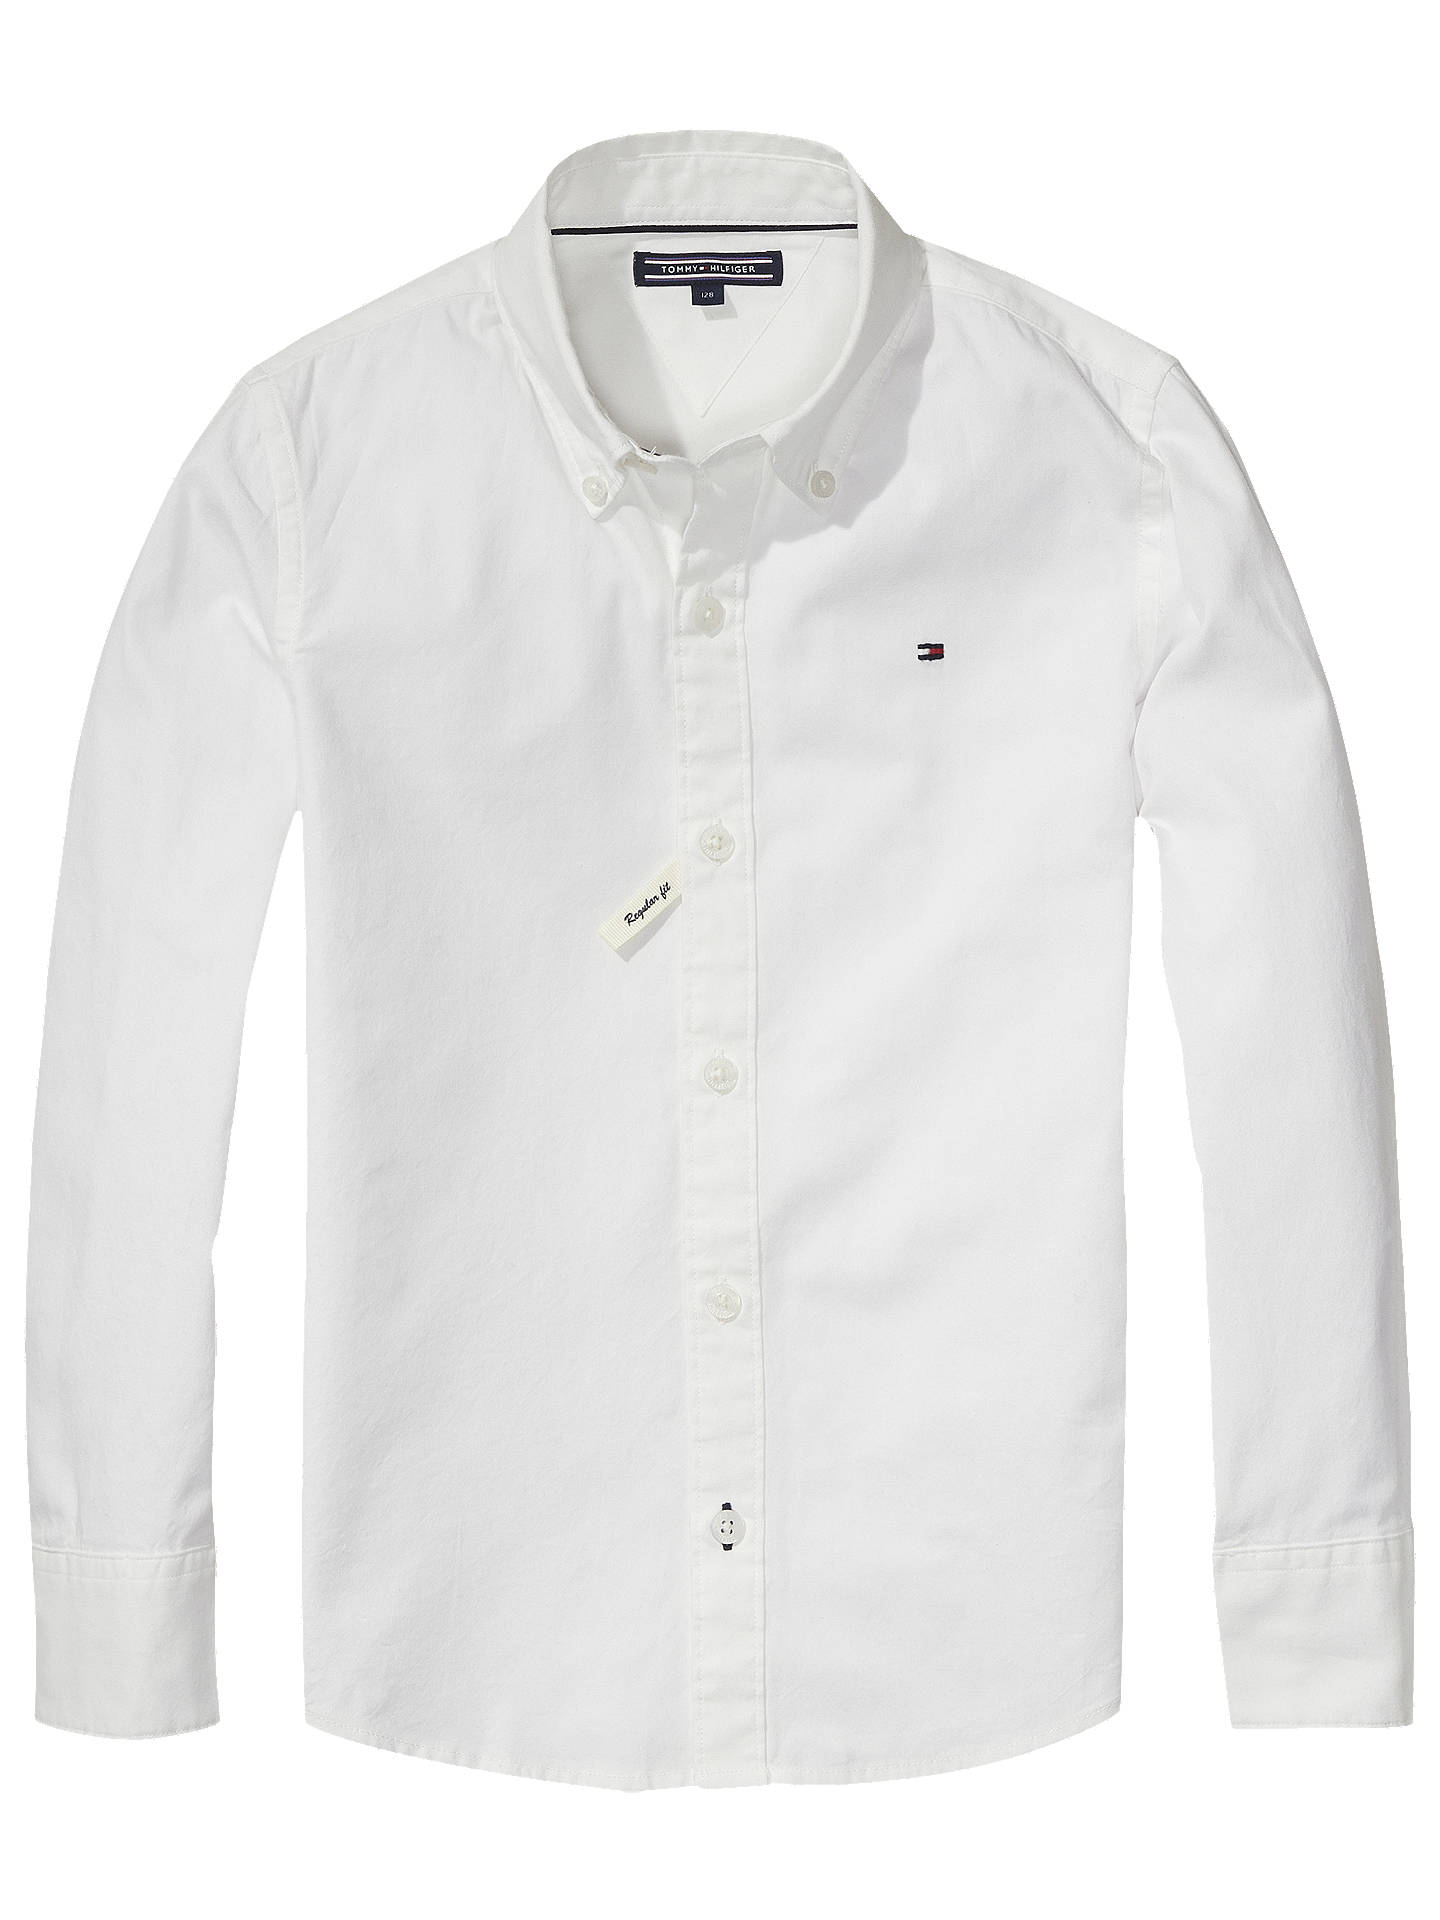 a638c39a Buy Tommy Hilfiger Boys' Poplin Shirt, White, 6 years Online at johnlewis.